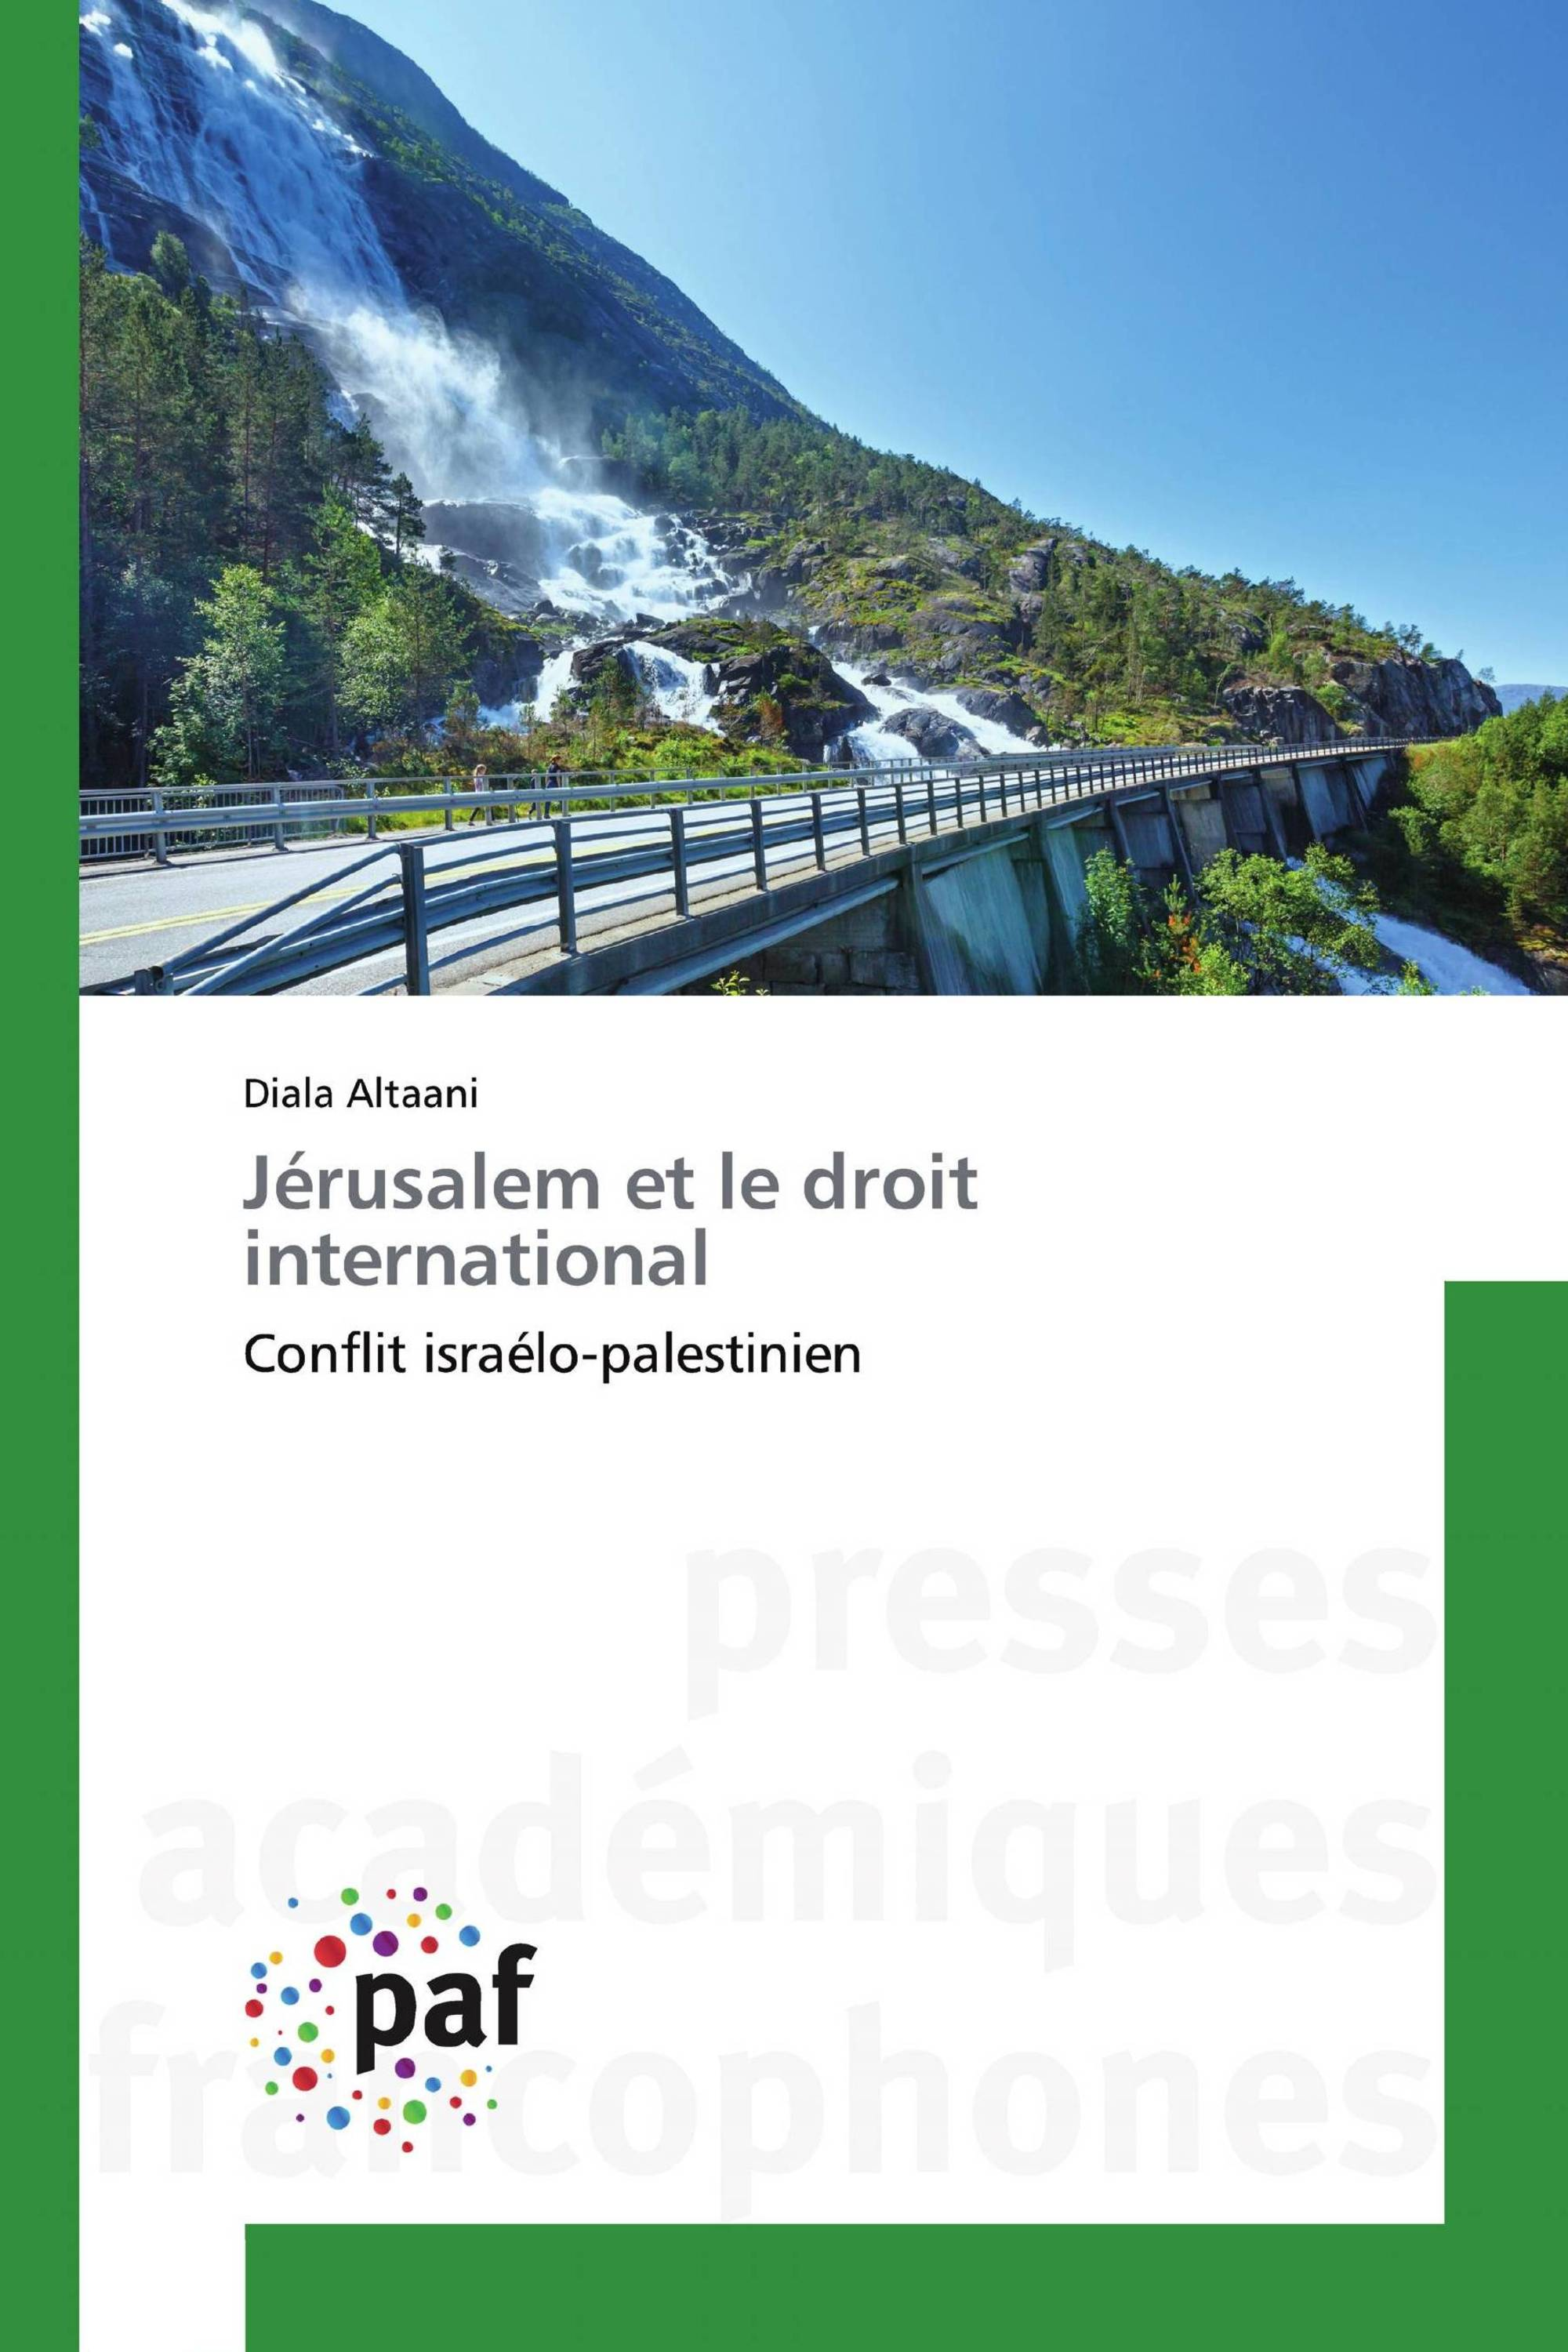 Jérusalem et le droit international